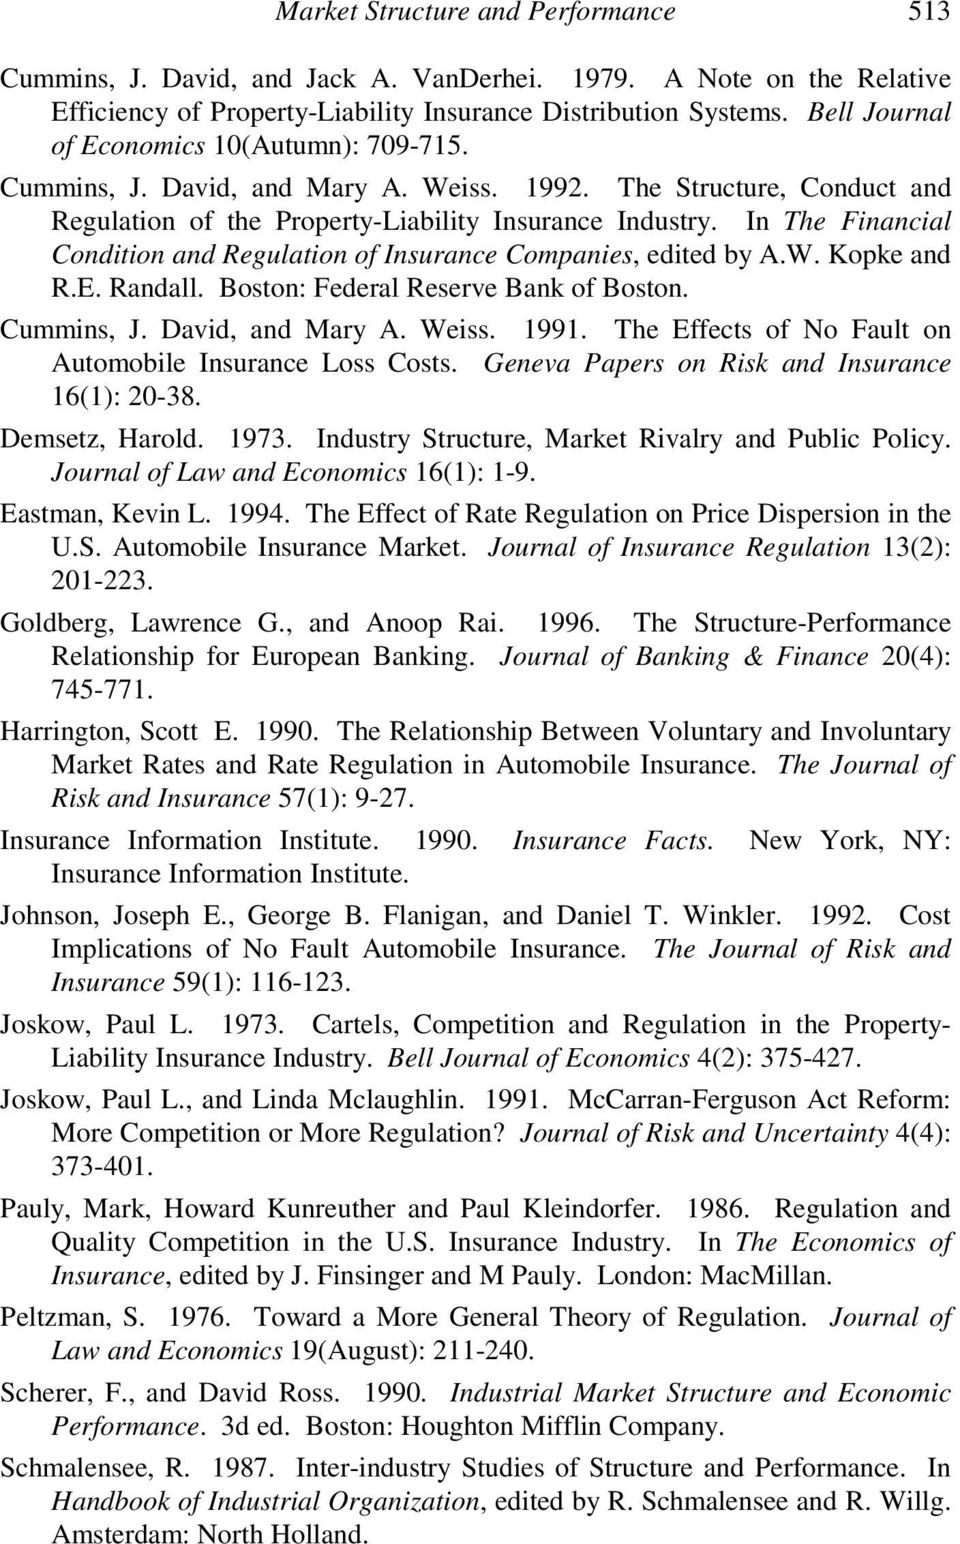 In The Financial Condition and Regulation of Insurance Companies, edited by A.W. Kopke and R.E. Randall. Boston: Federal Reserve Bank of Boston. Cummins, J. David, and Mary A. Weiss. 1991.